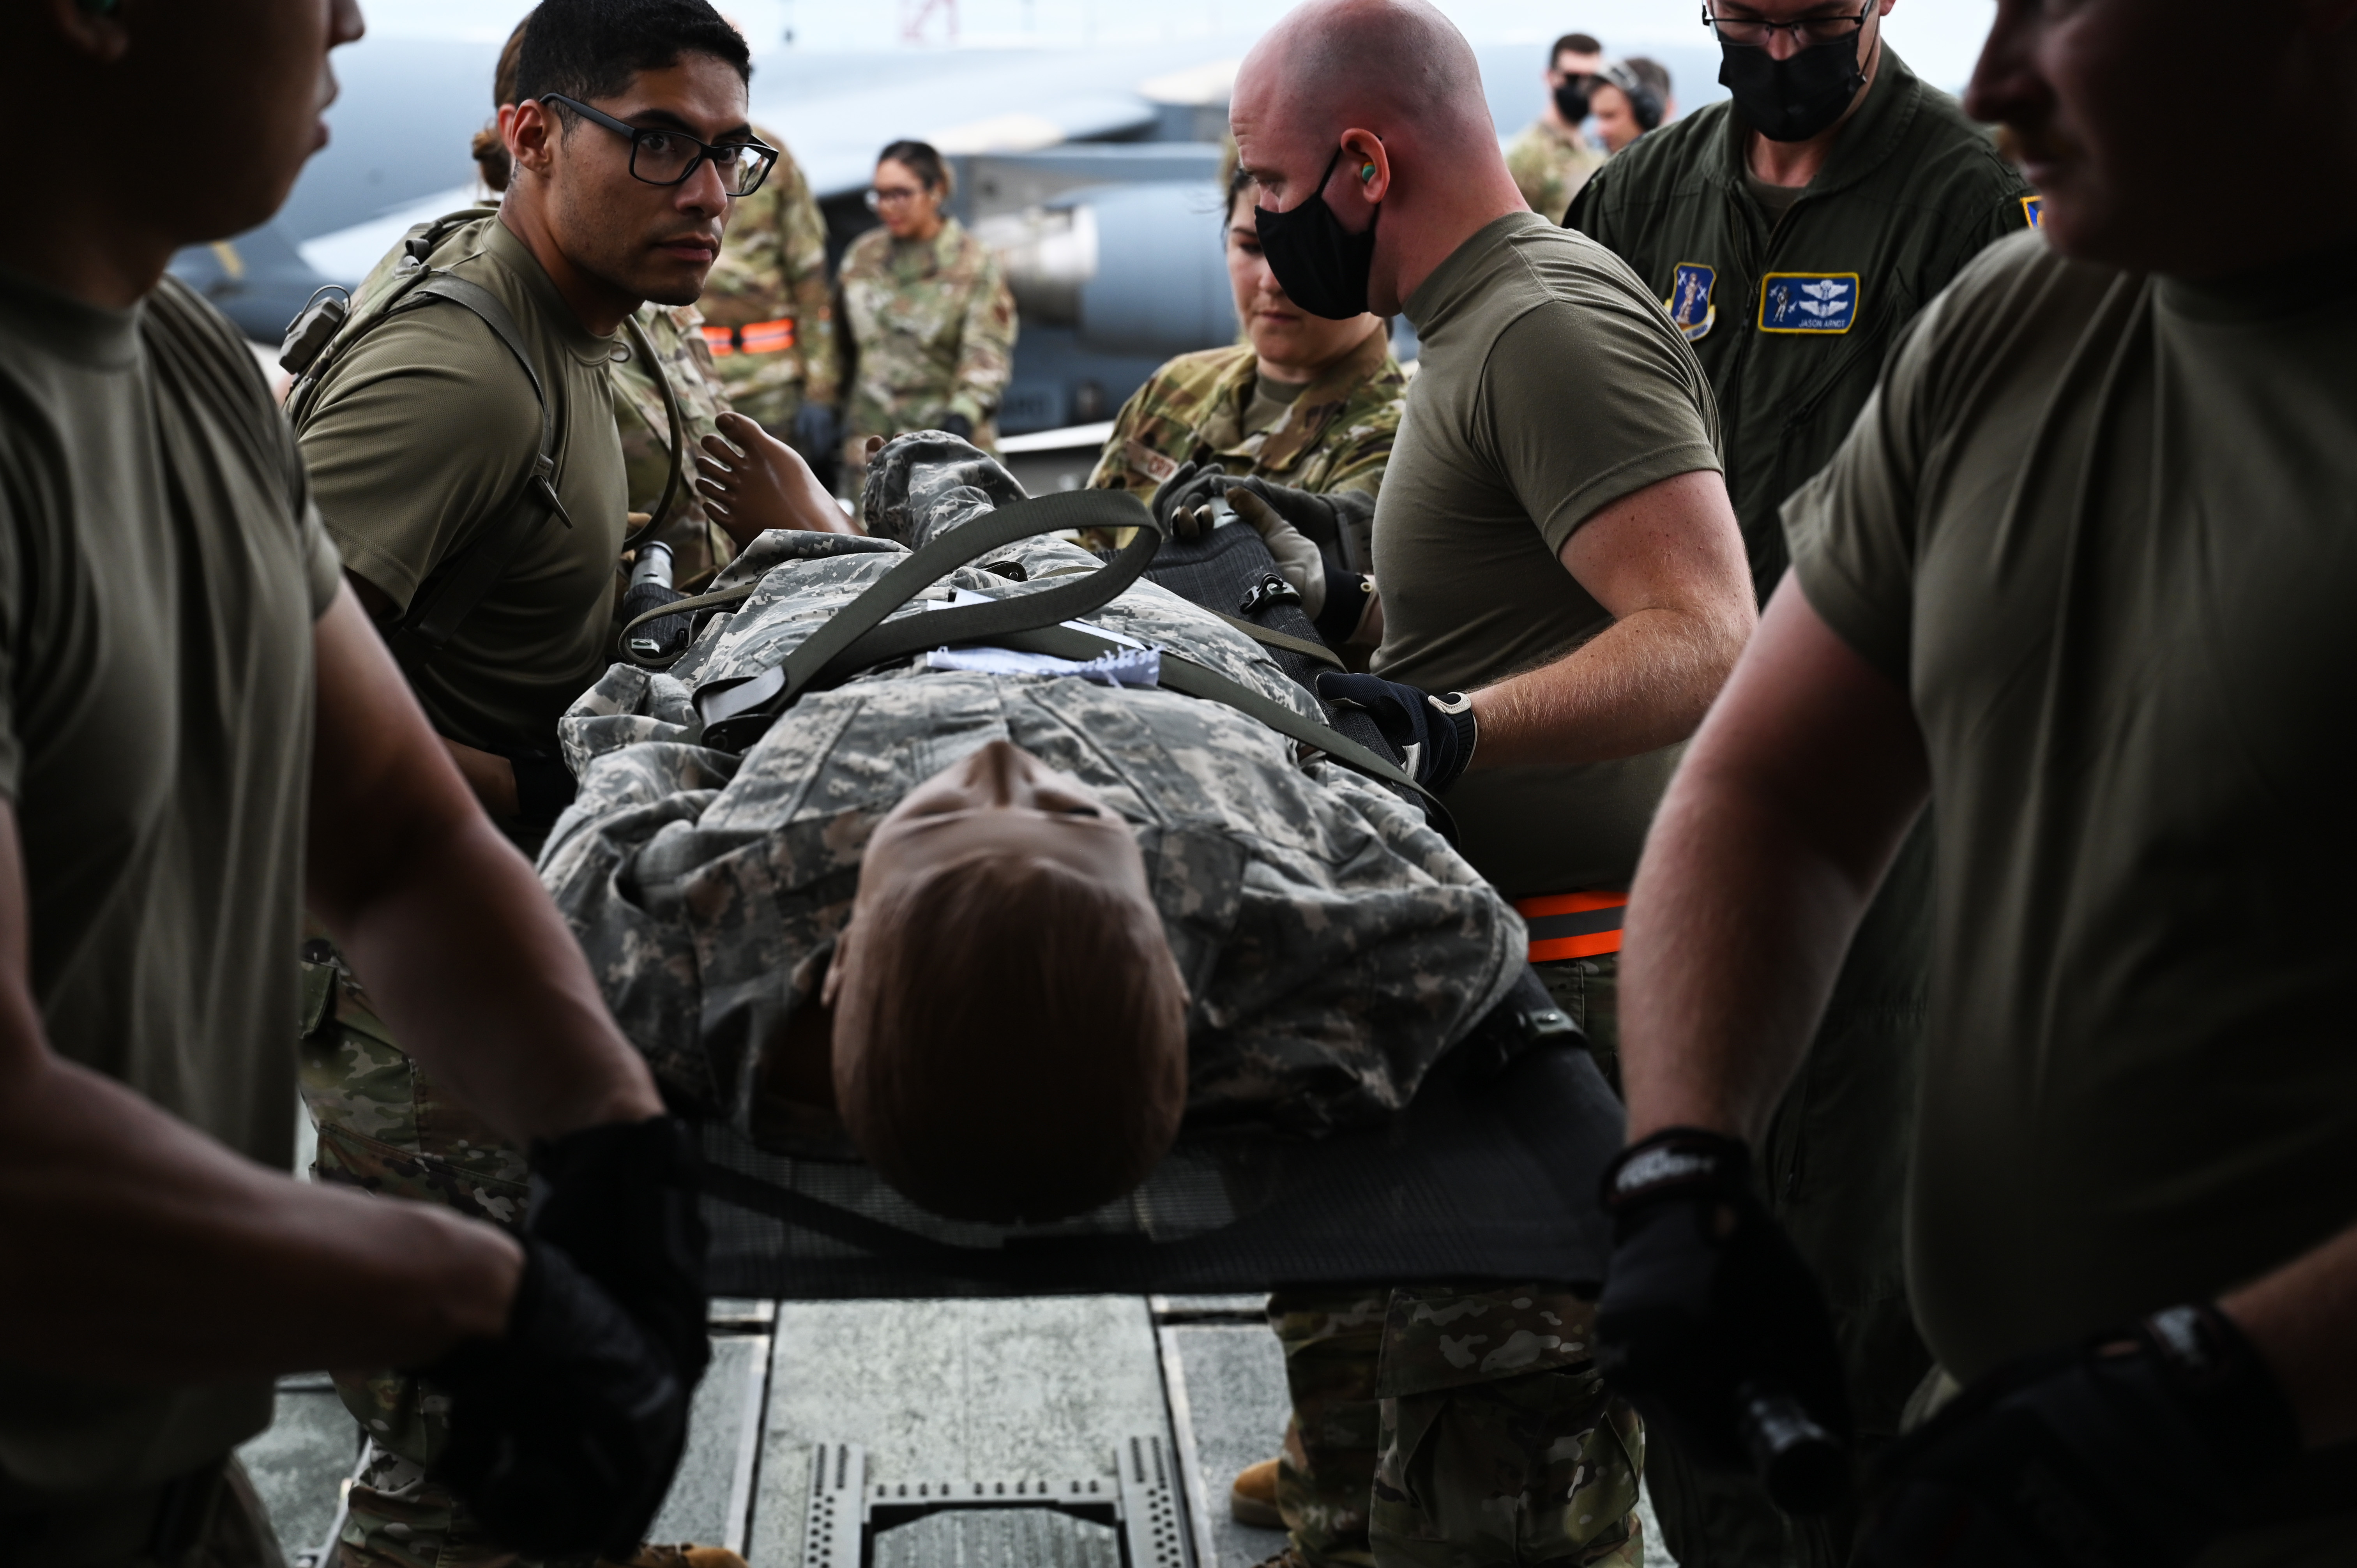 165th AW participates in Northern Strike 21 medical exercise